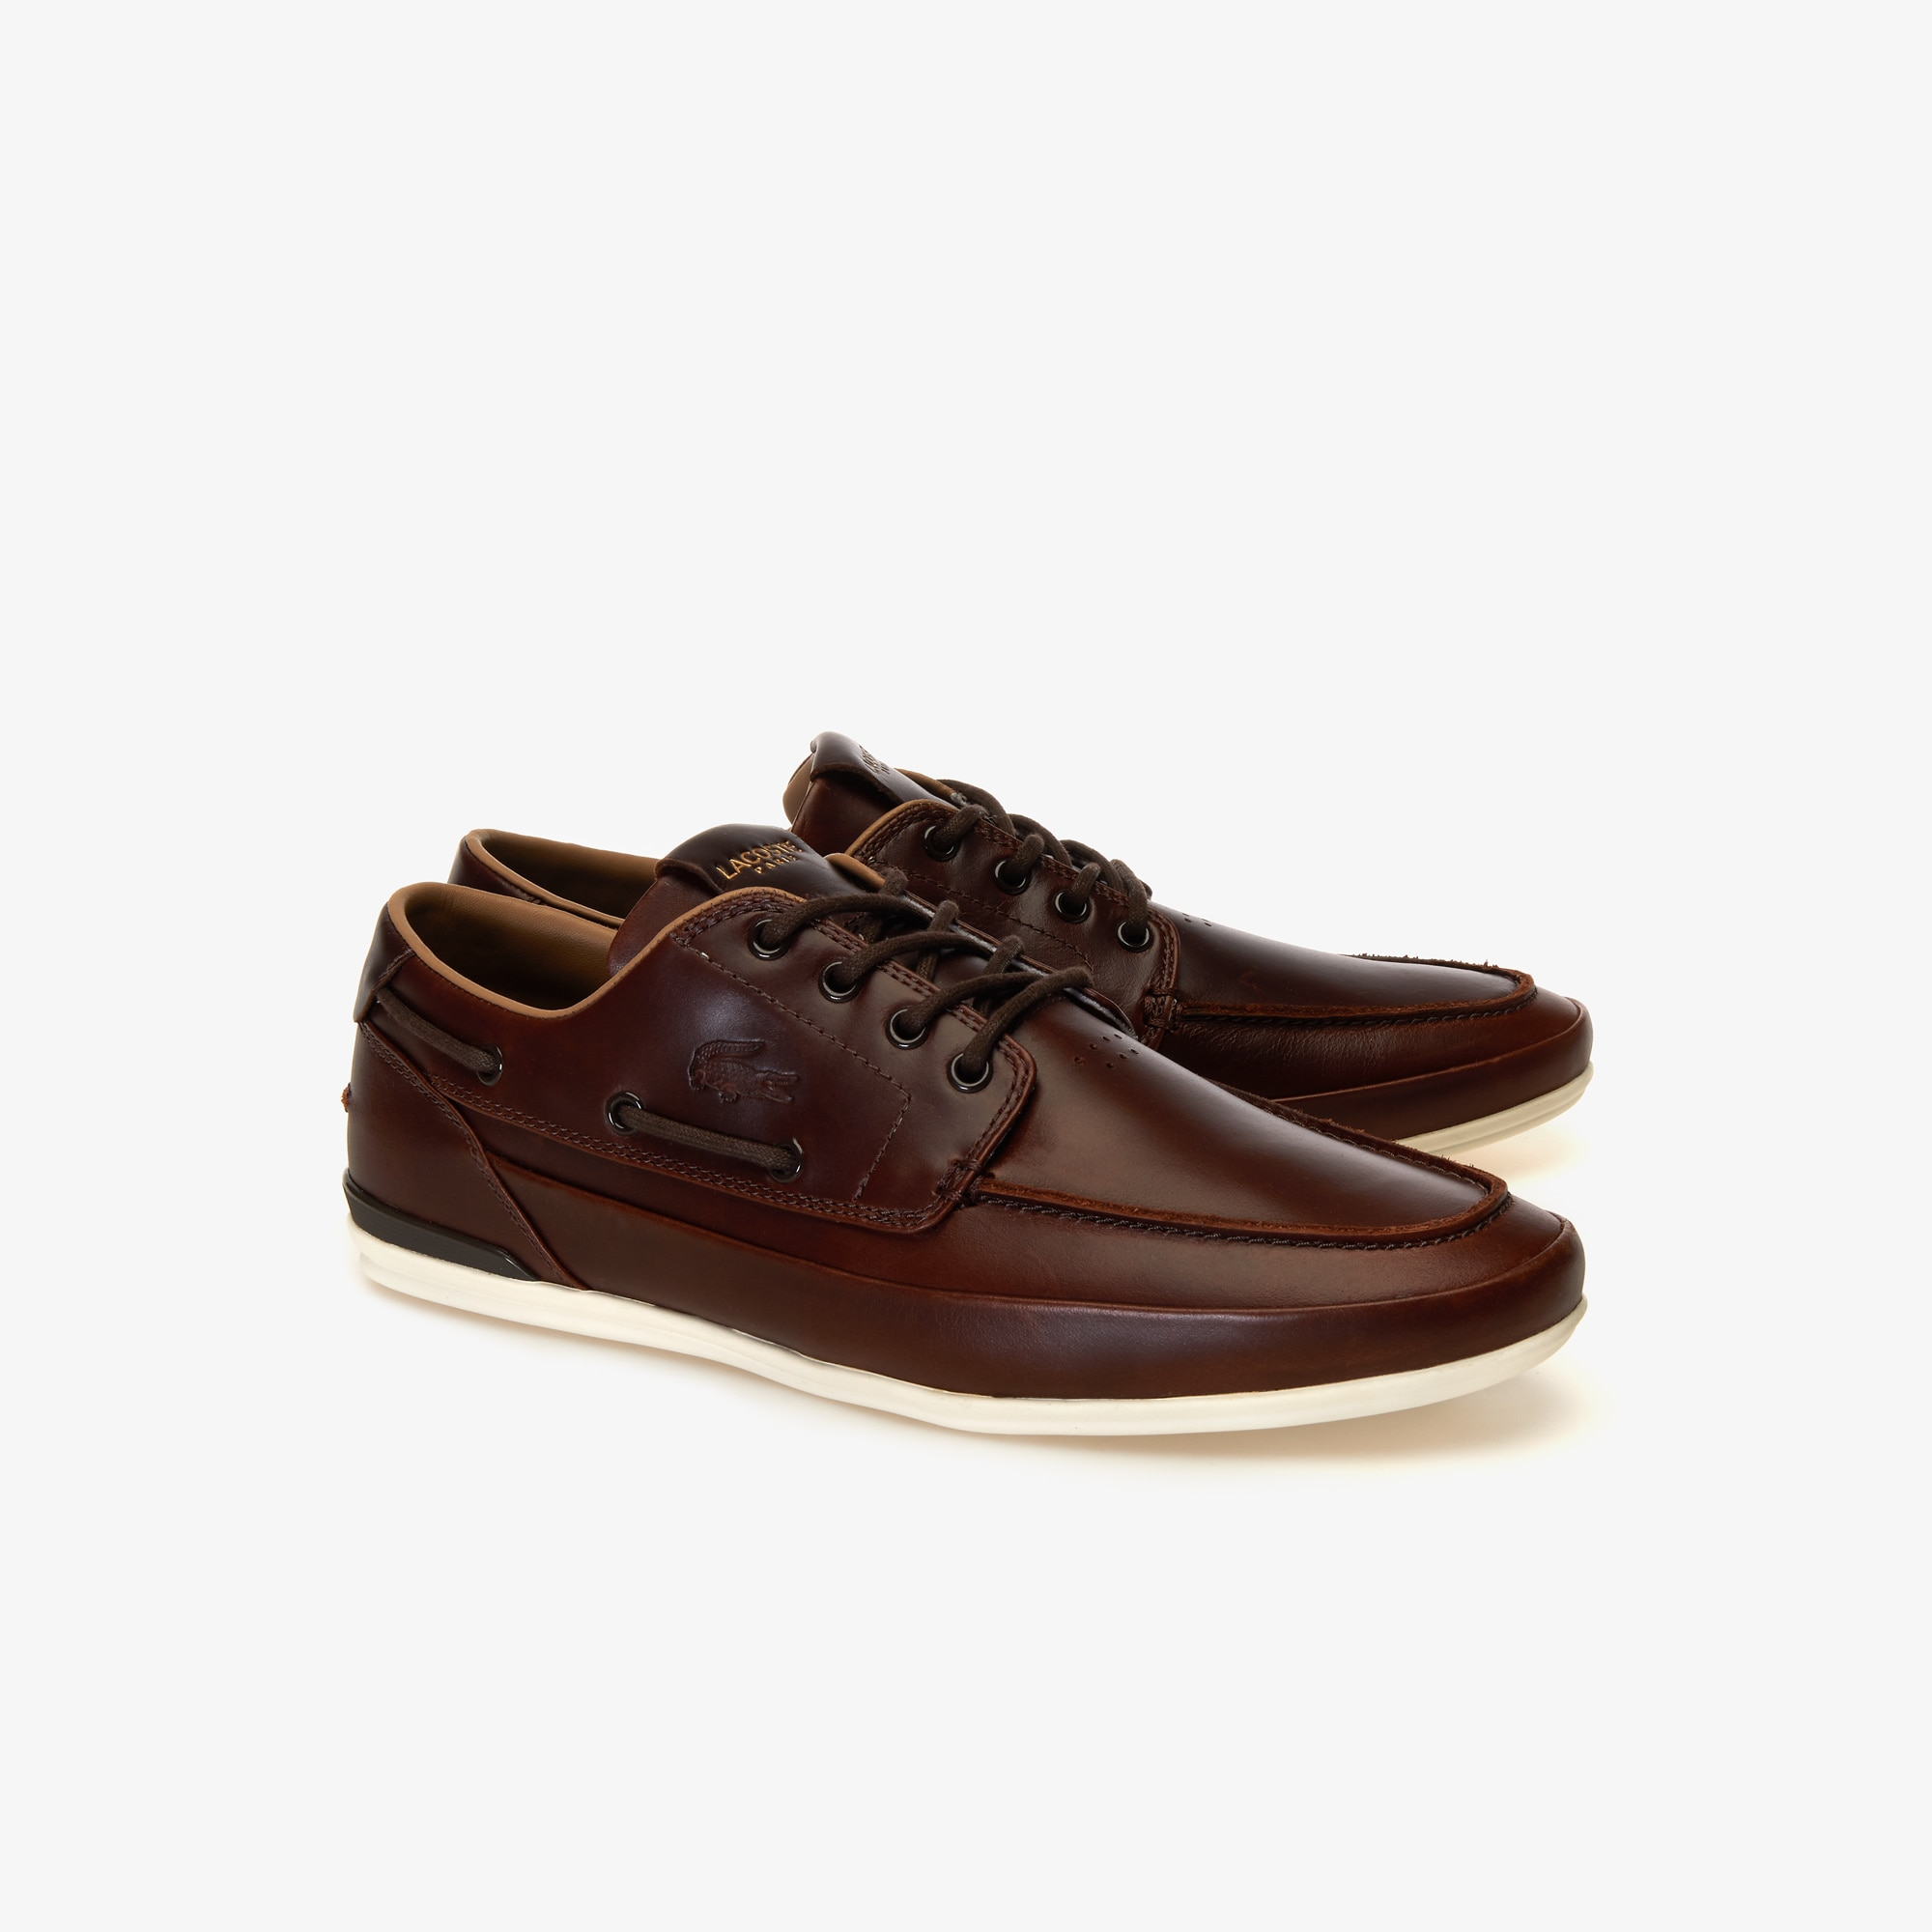 Men's Marina Premium Leather Deck Shoes